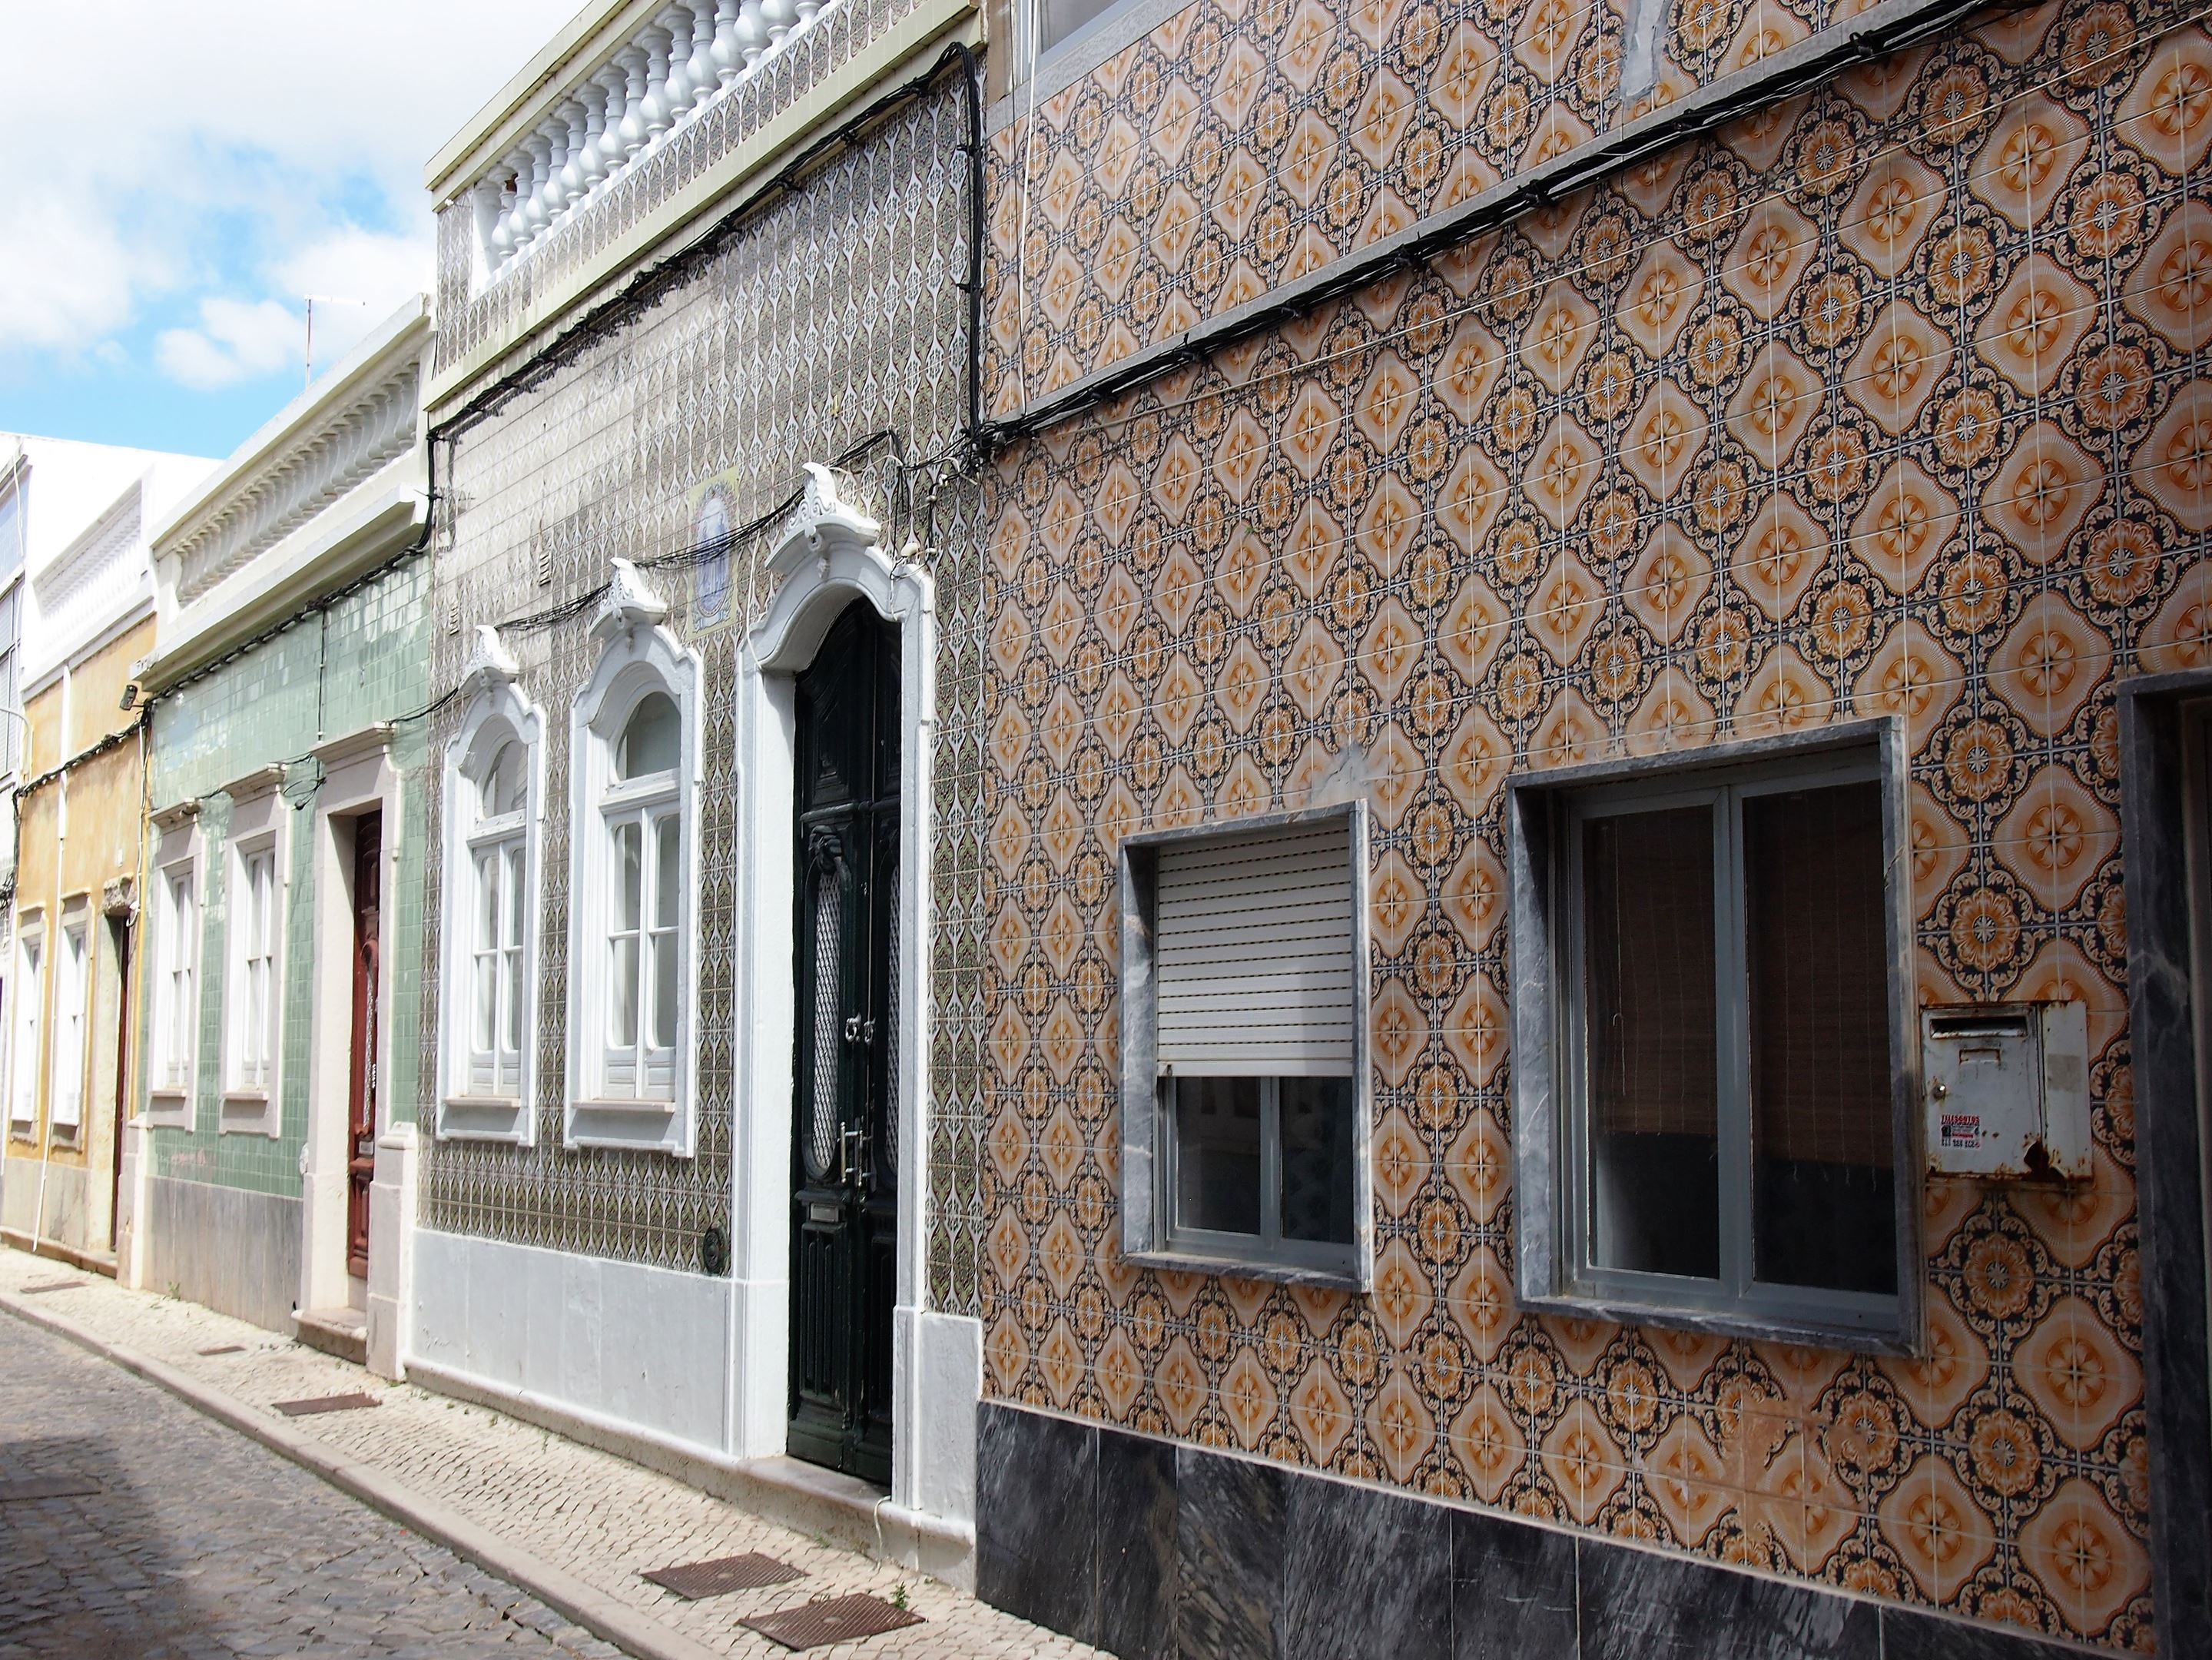 Typical Algarvean houses covered in tiles in Olhão, Algarve